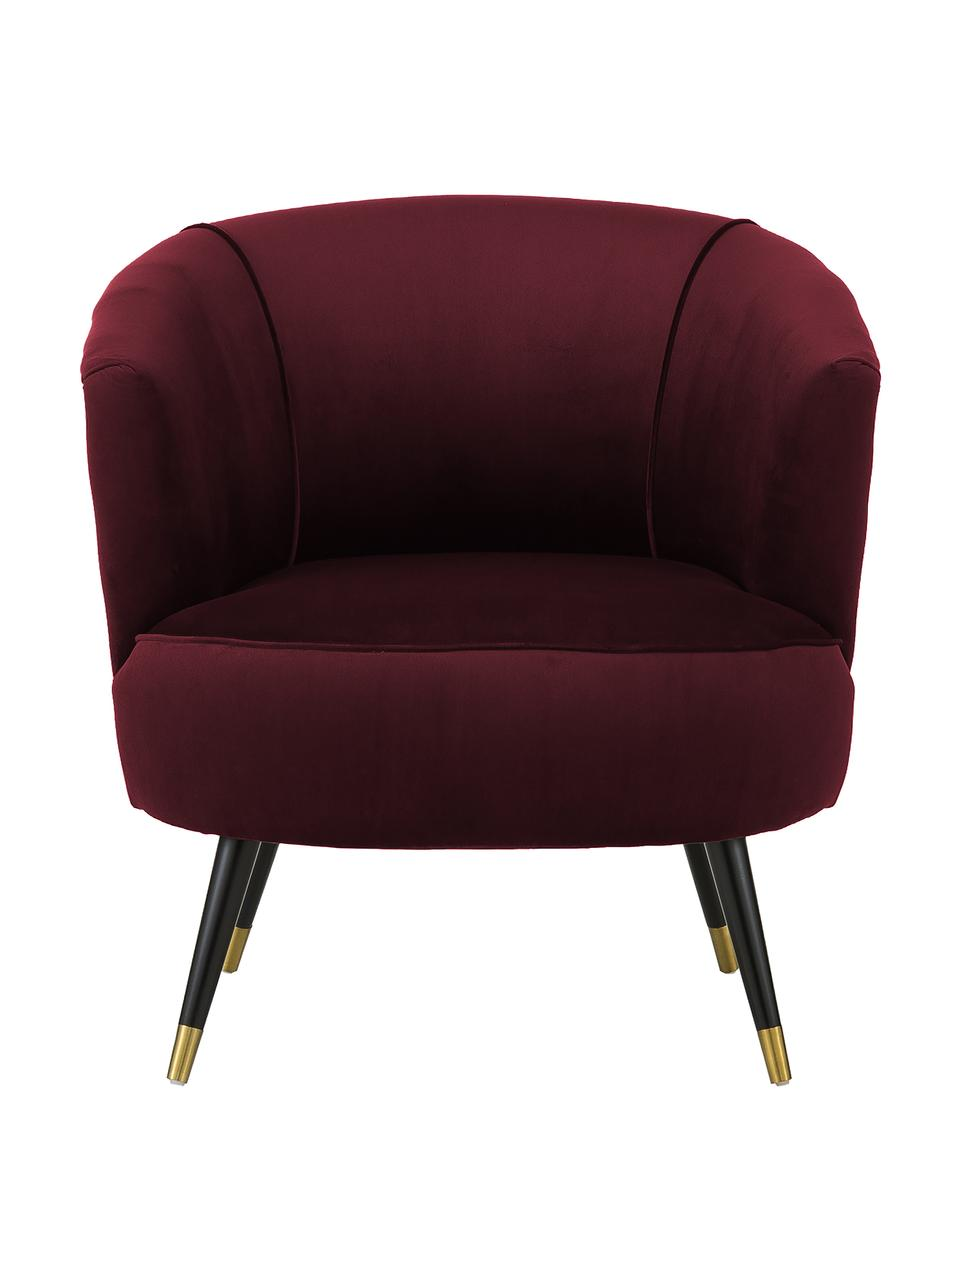 Fauteuil cocktail en velours rouge Ella, Pourpre